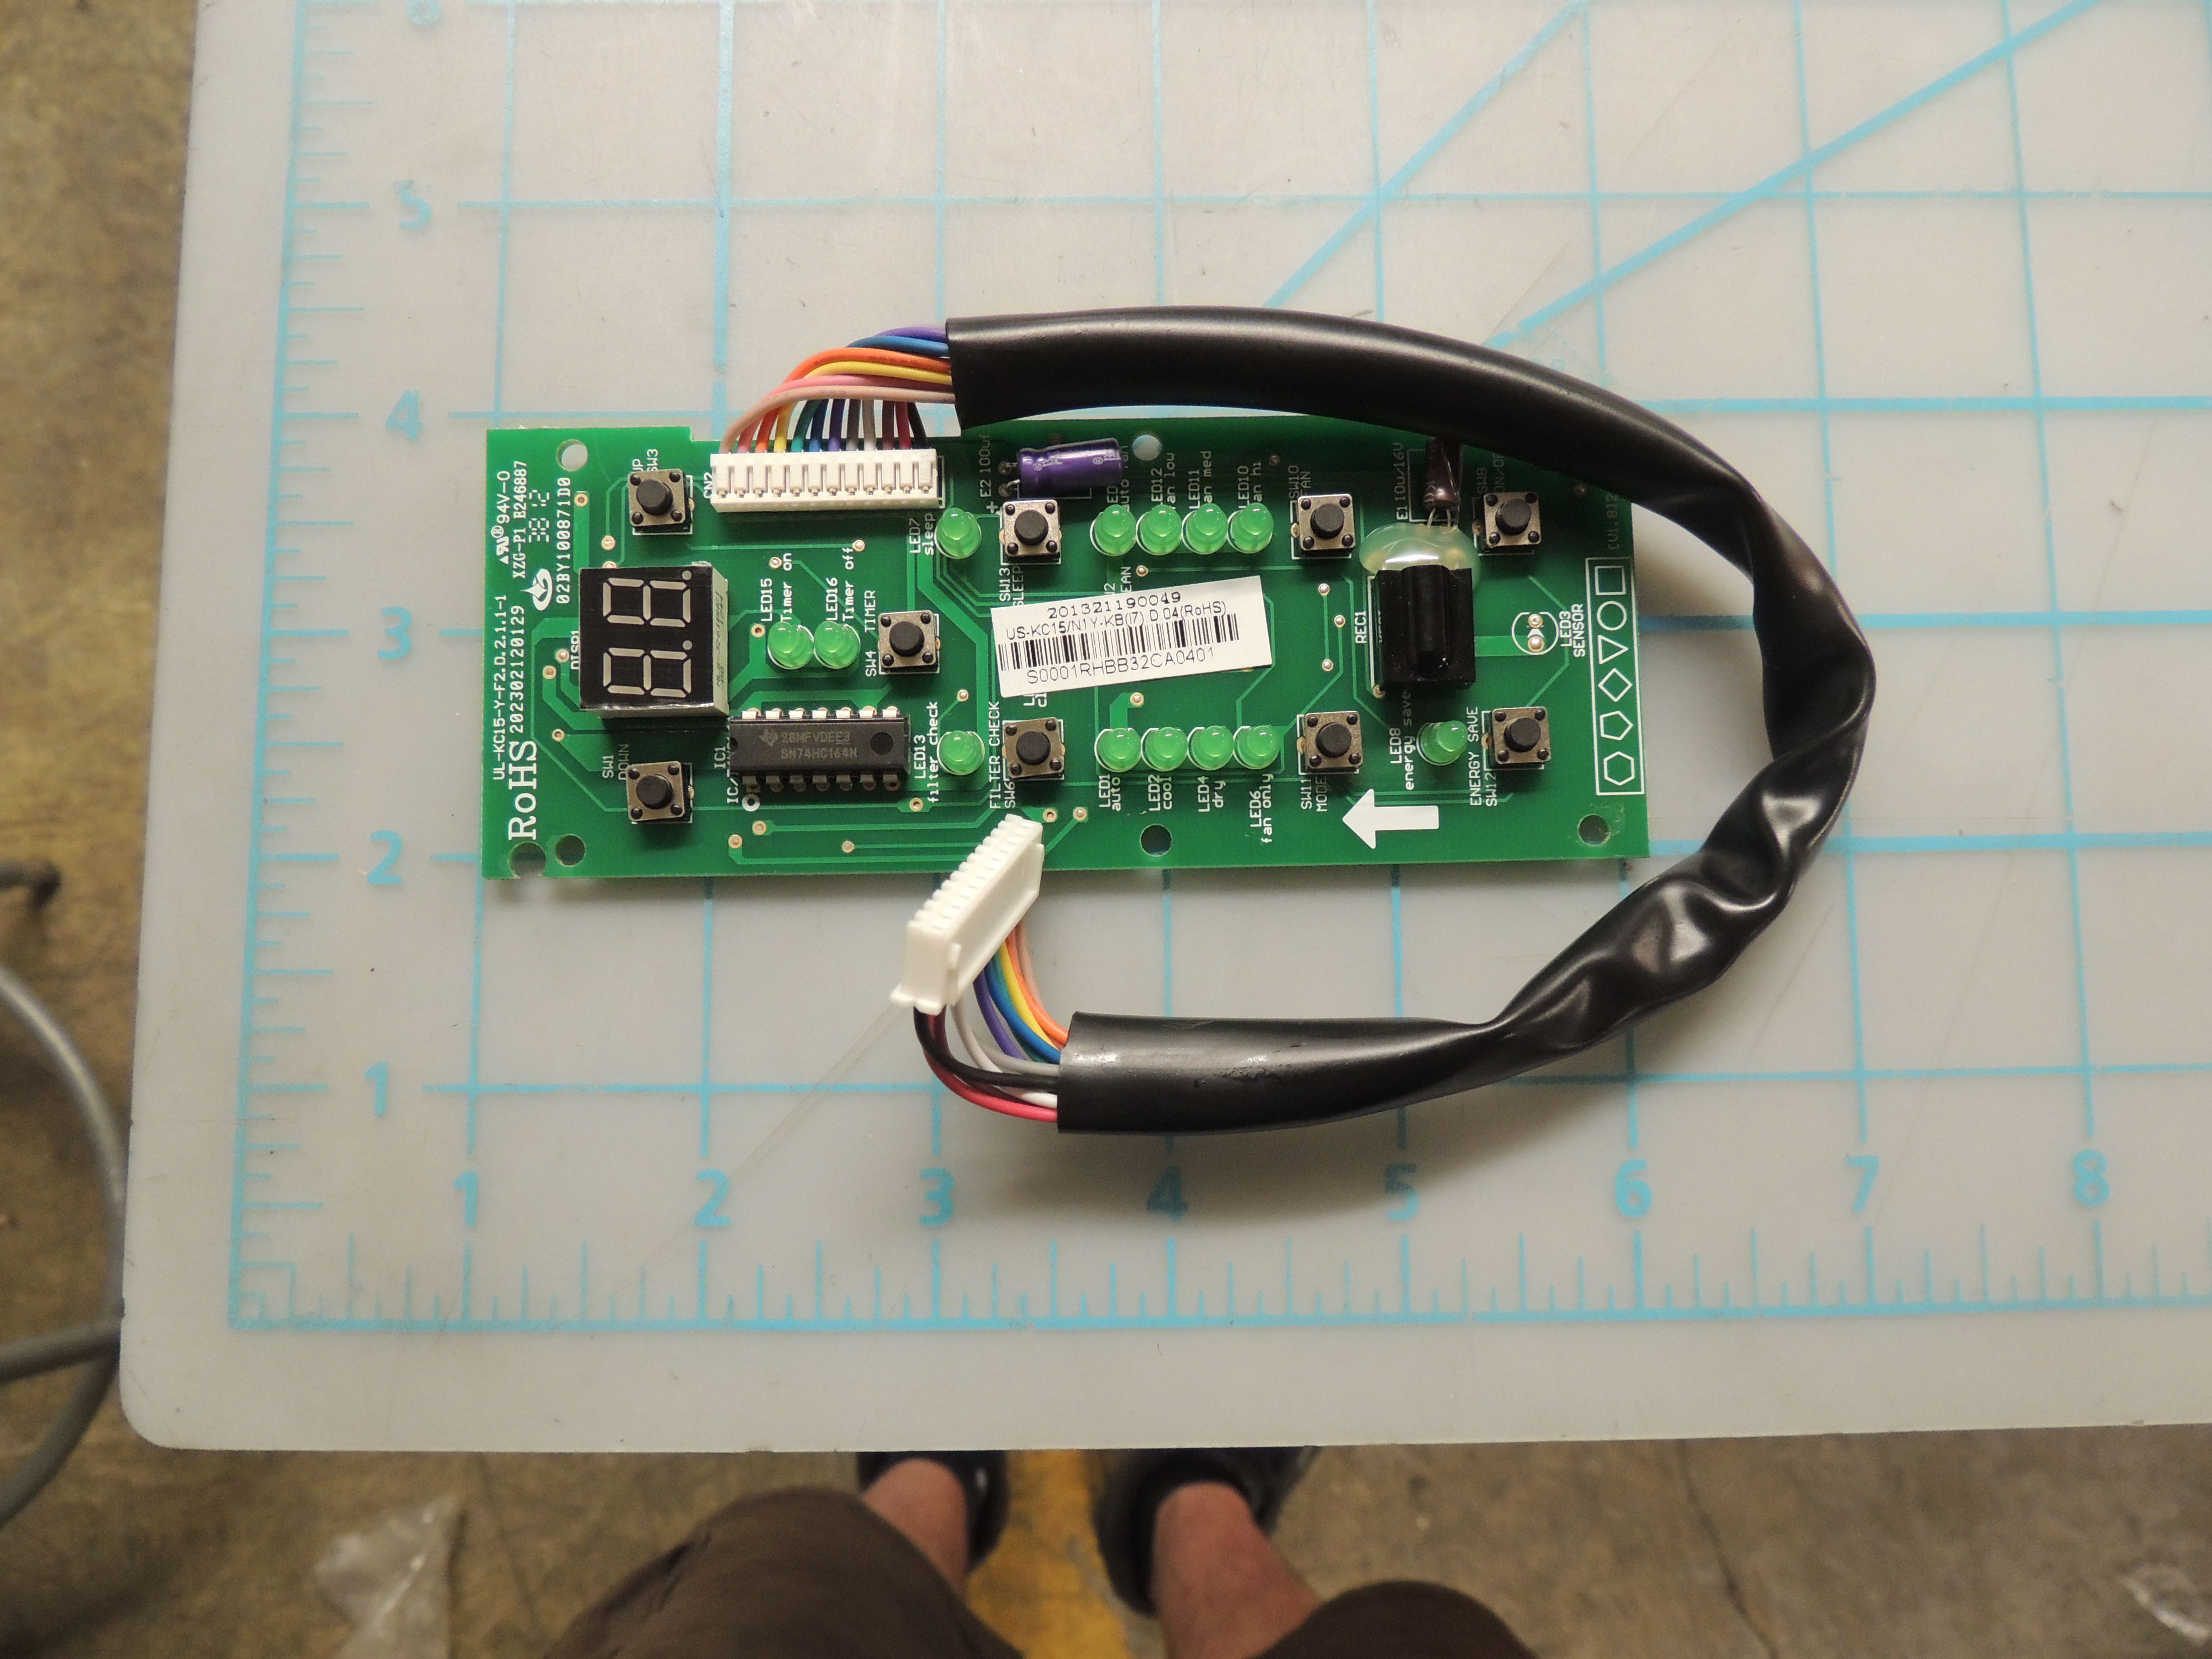 DAC Display board assembly